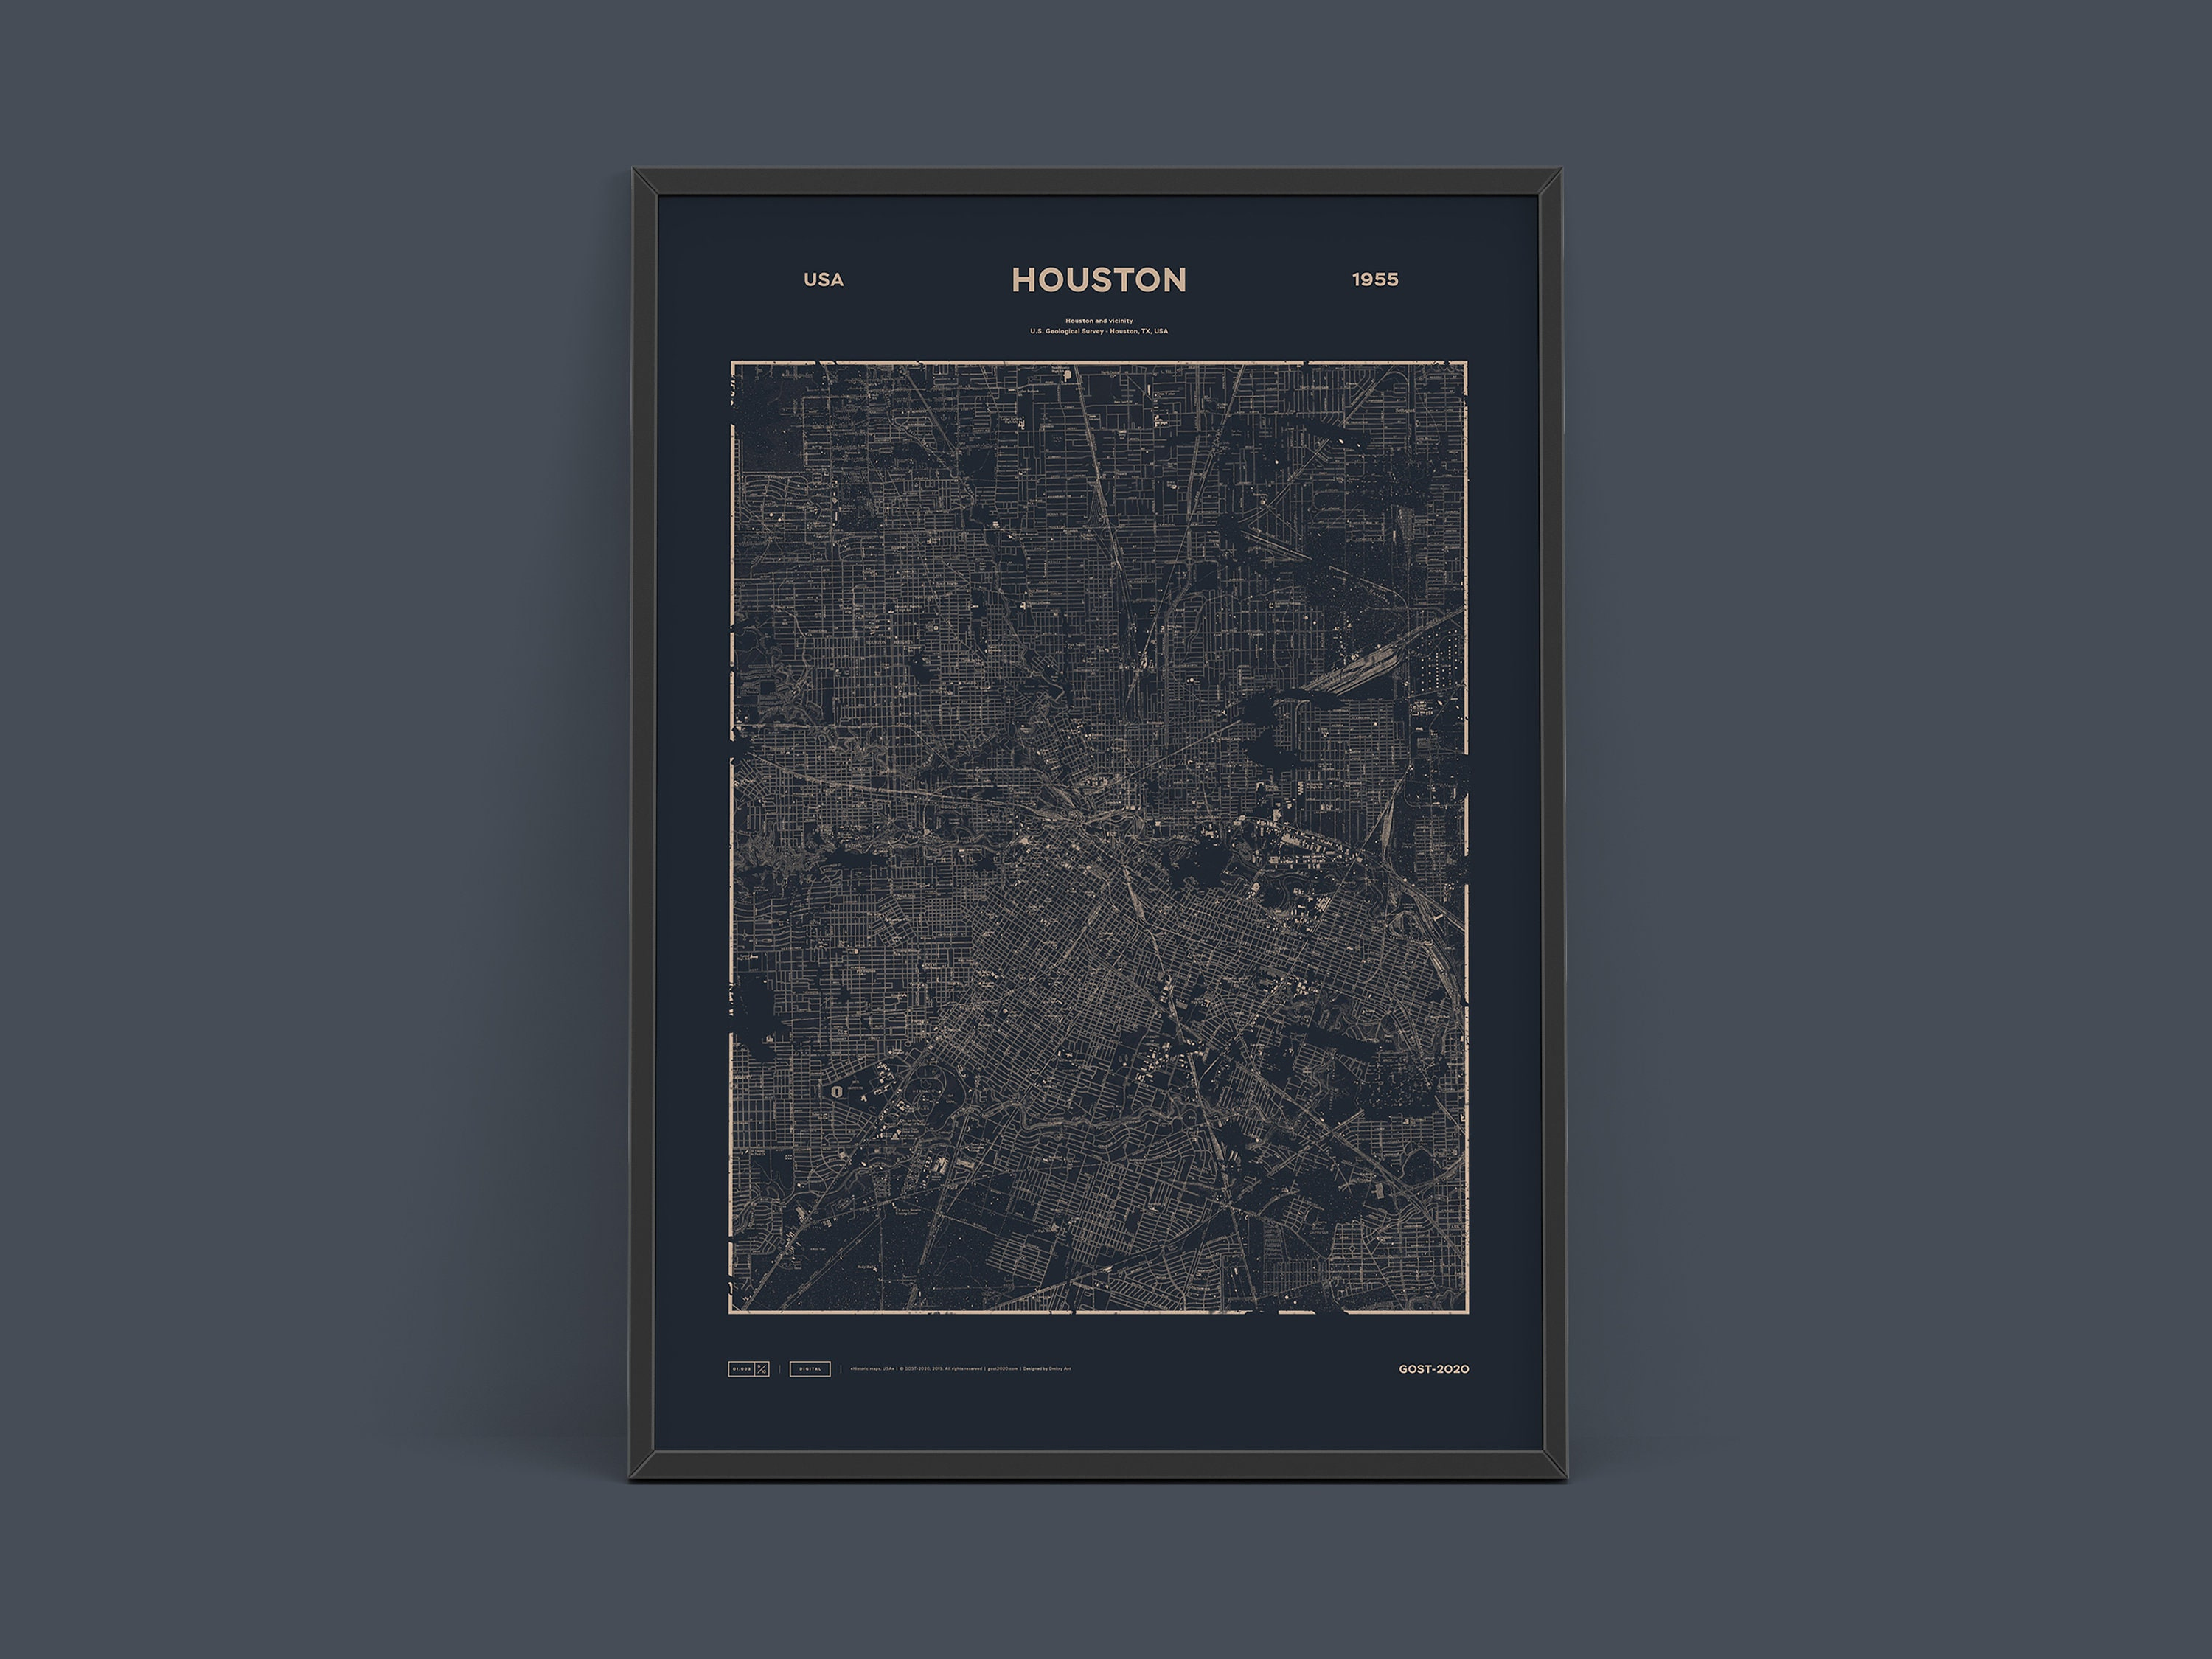 Houston 1955 - Old map GOST-2020 | Texas | Historic art | Instant download on smsa maps of usa, best maps of usa, city maps of usa, region maps of usa, state maps of usa, zip code map usa, msn maps of usa, elevation maps of usa,